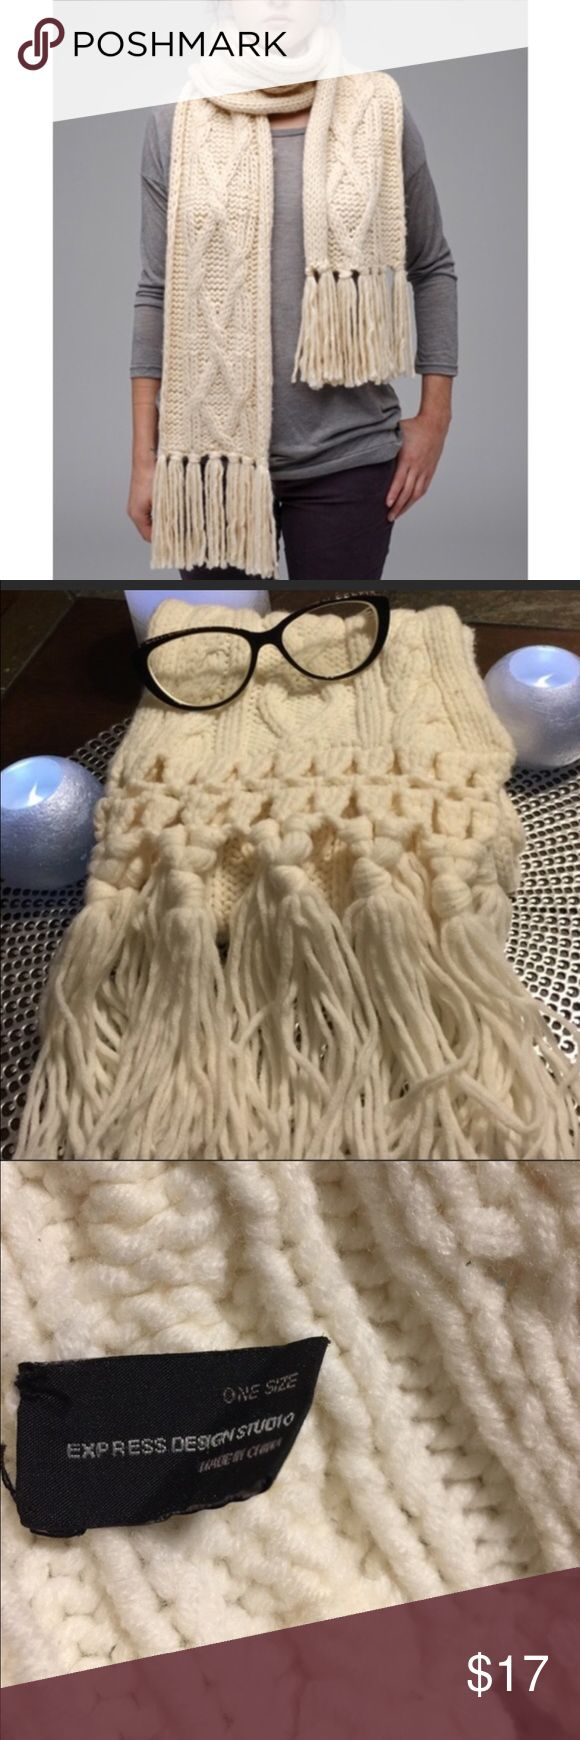 EUC Chunky Cable Knit Scarf by Express Comfy Cozy EUC Chunky Cable Knit Scarf by Express in a luxurious cream color. Express Accessories Scarves & Wraps